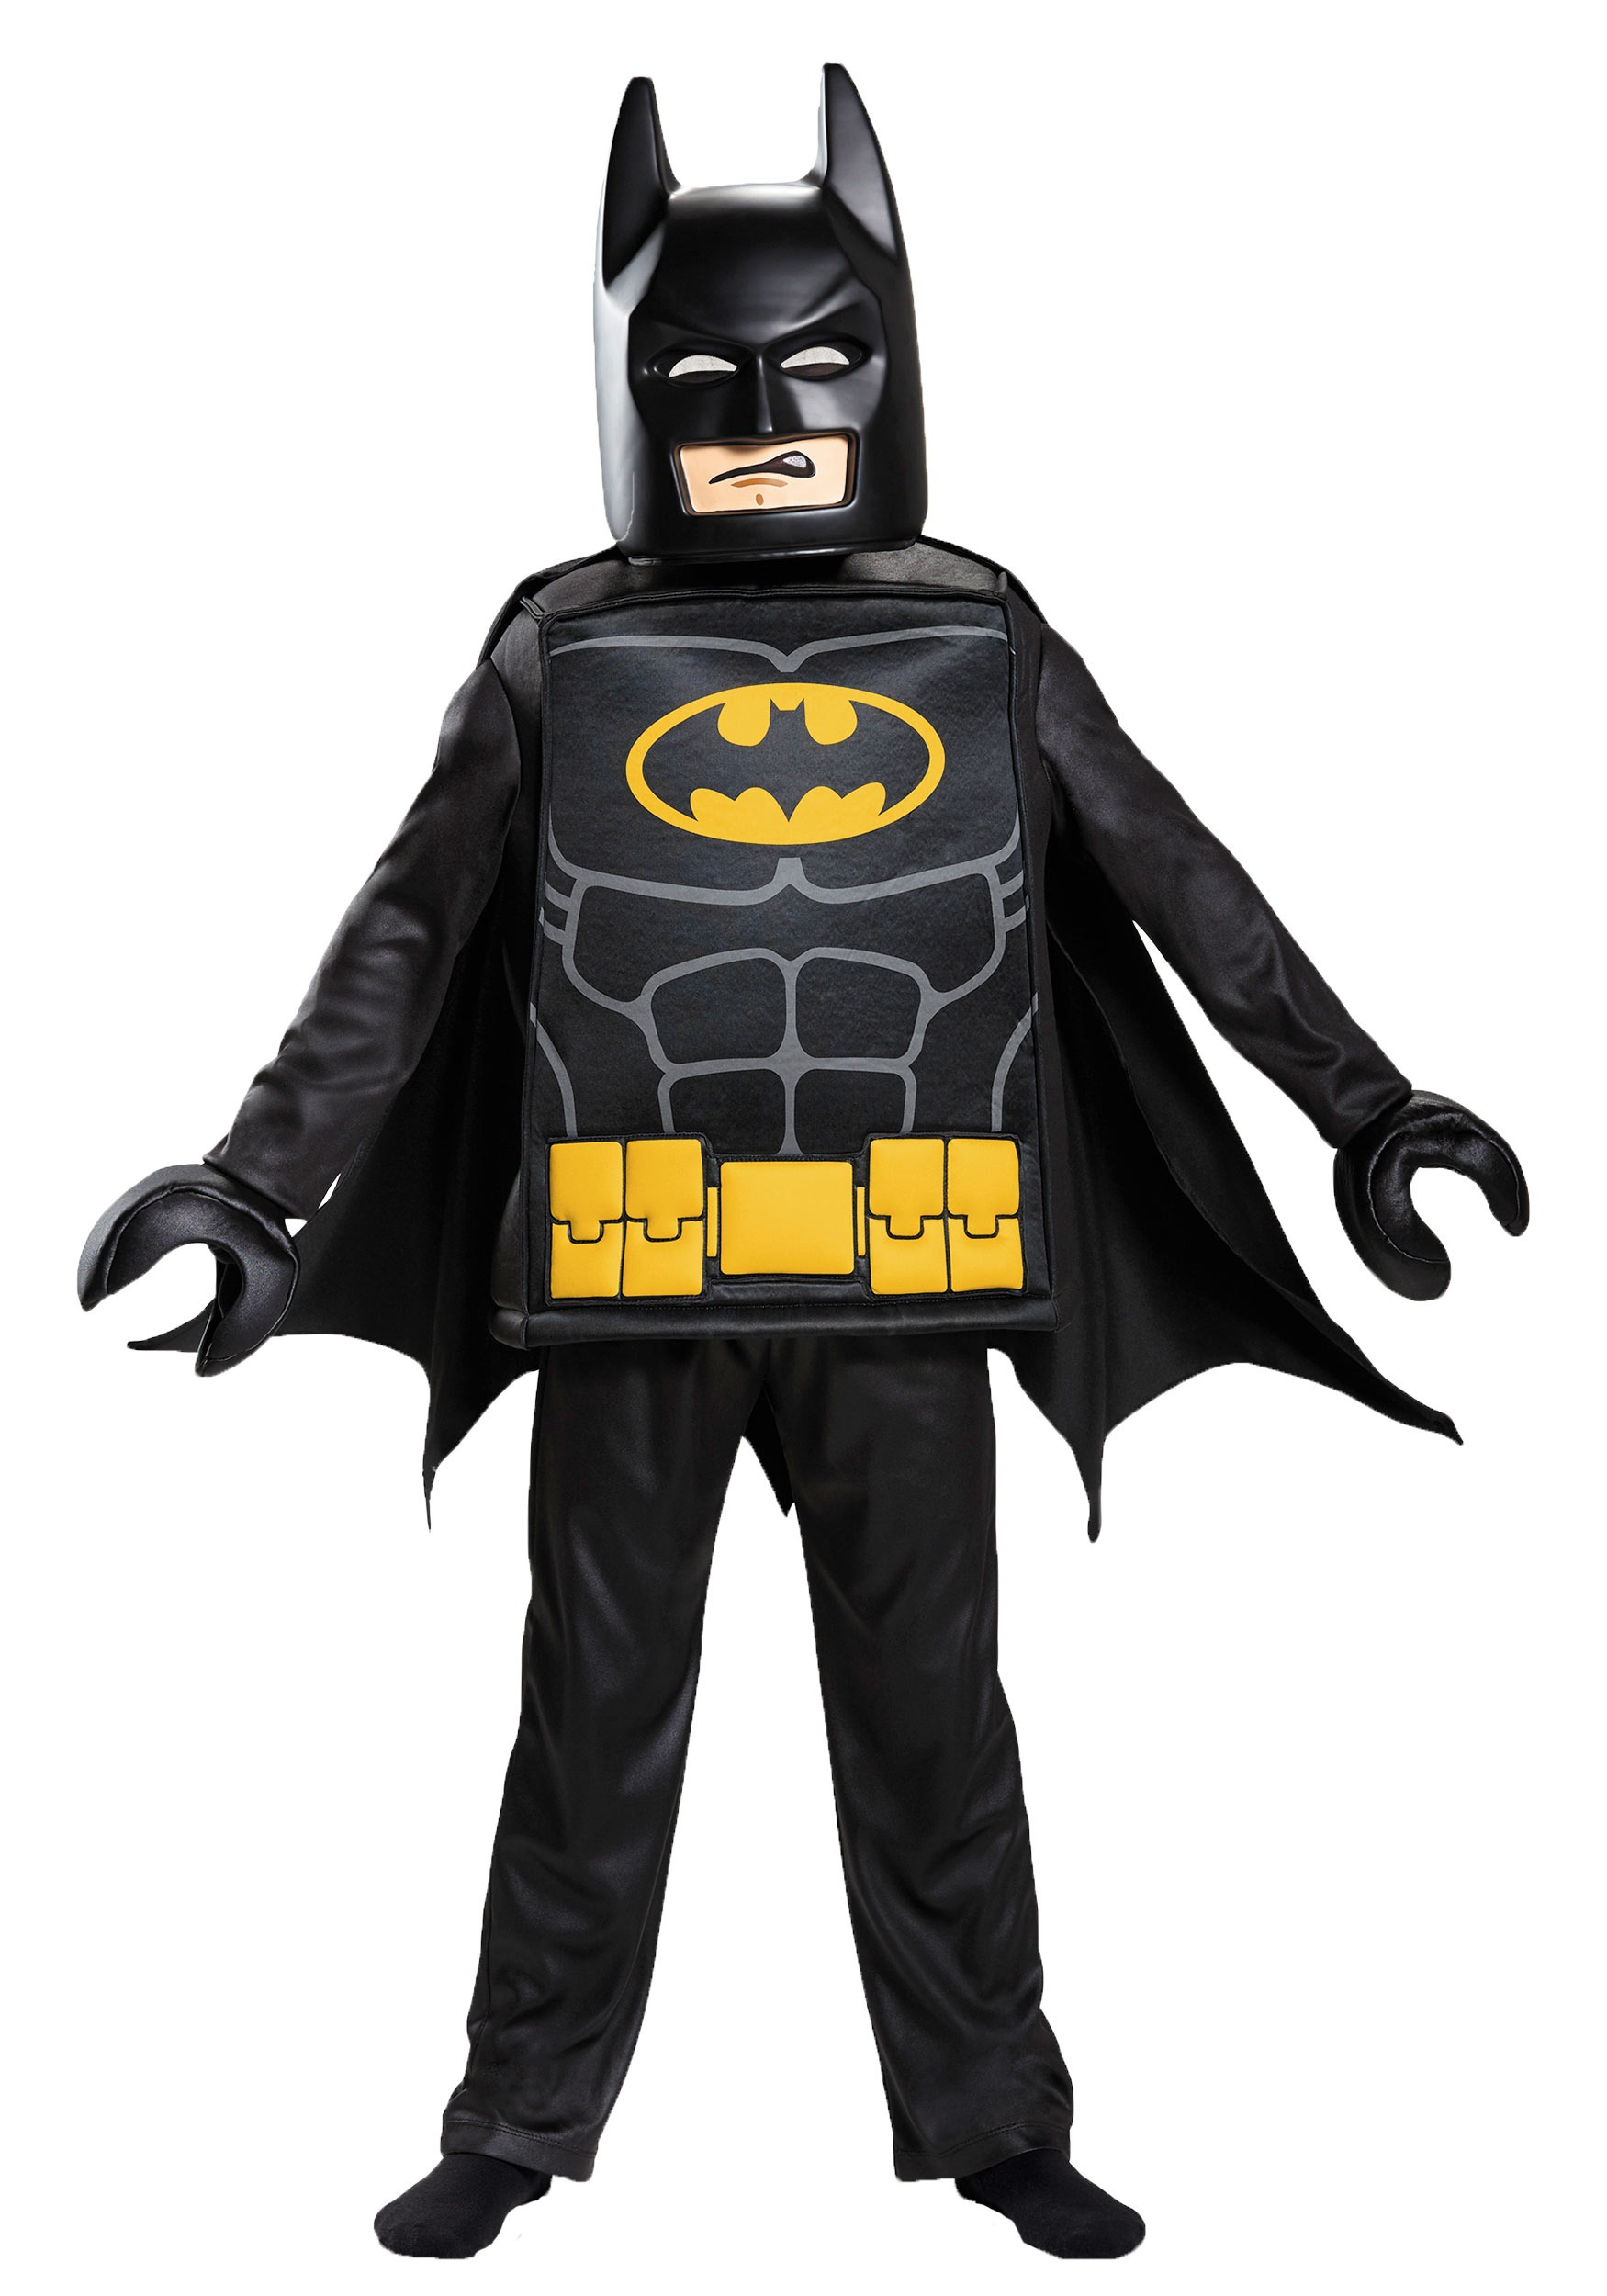 Lego batman movie batman costume for kids boys lego batman movie batman costume voltagebd Image collections